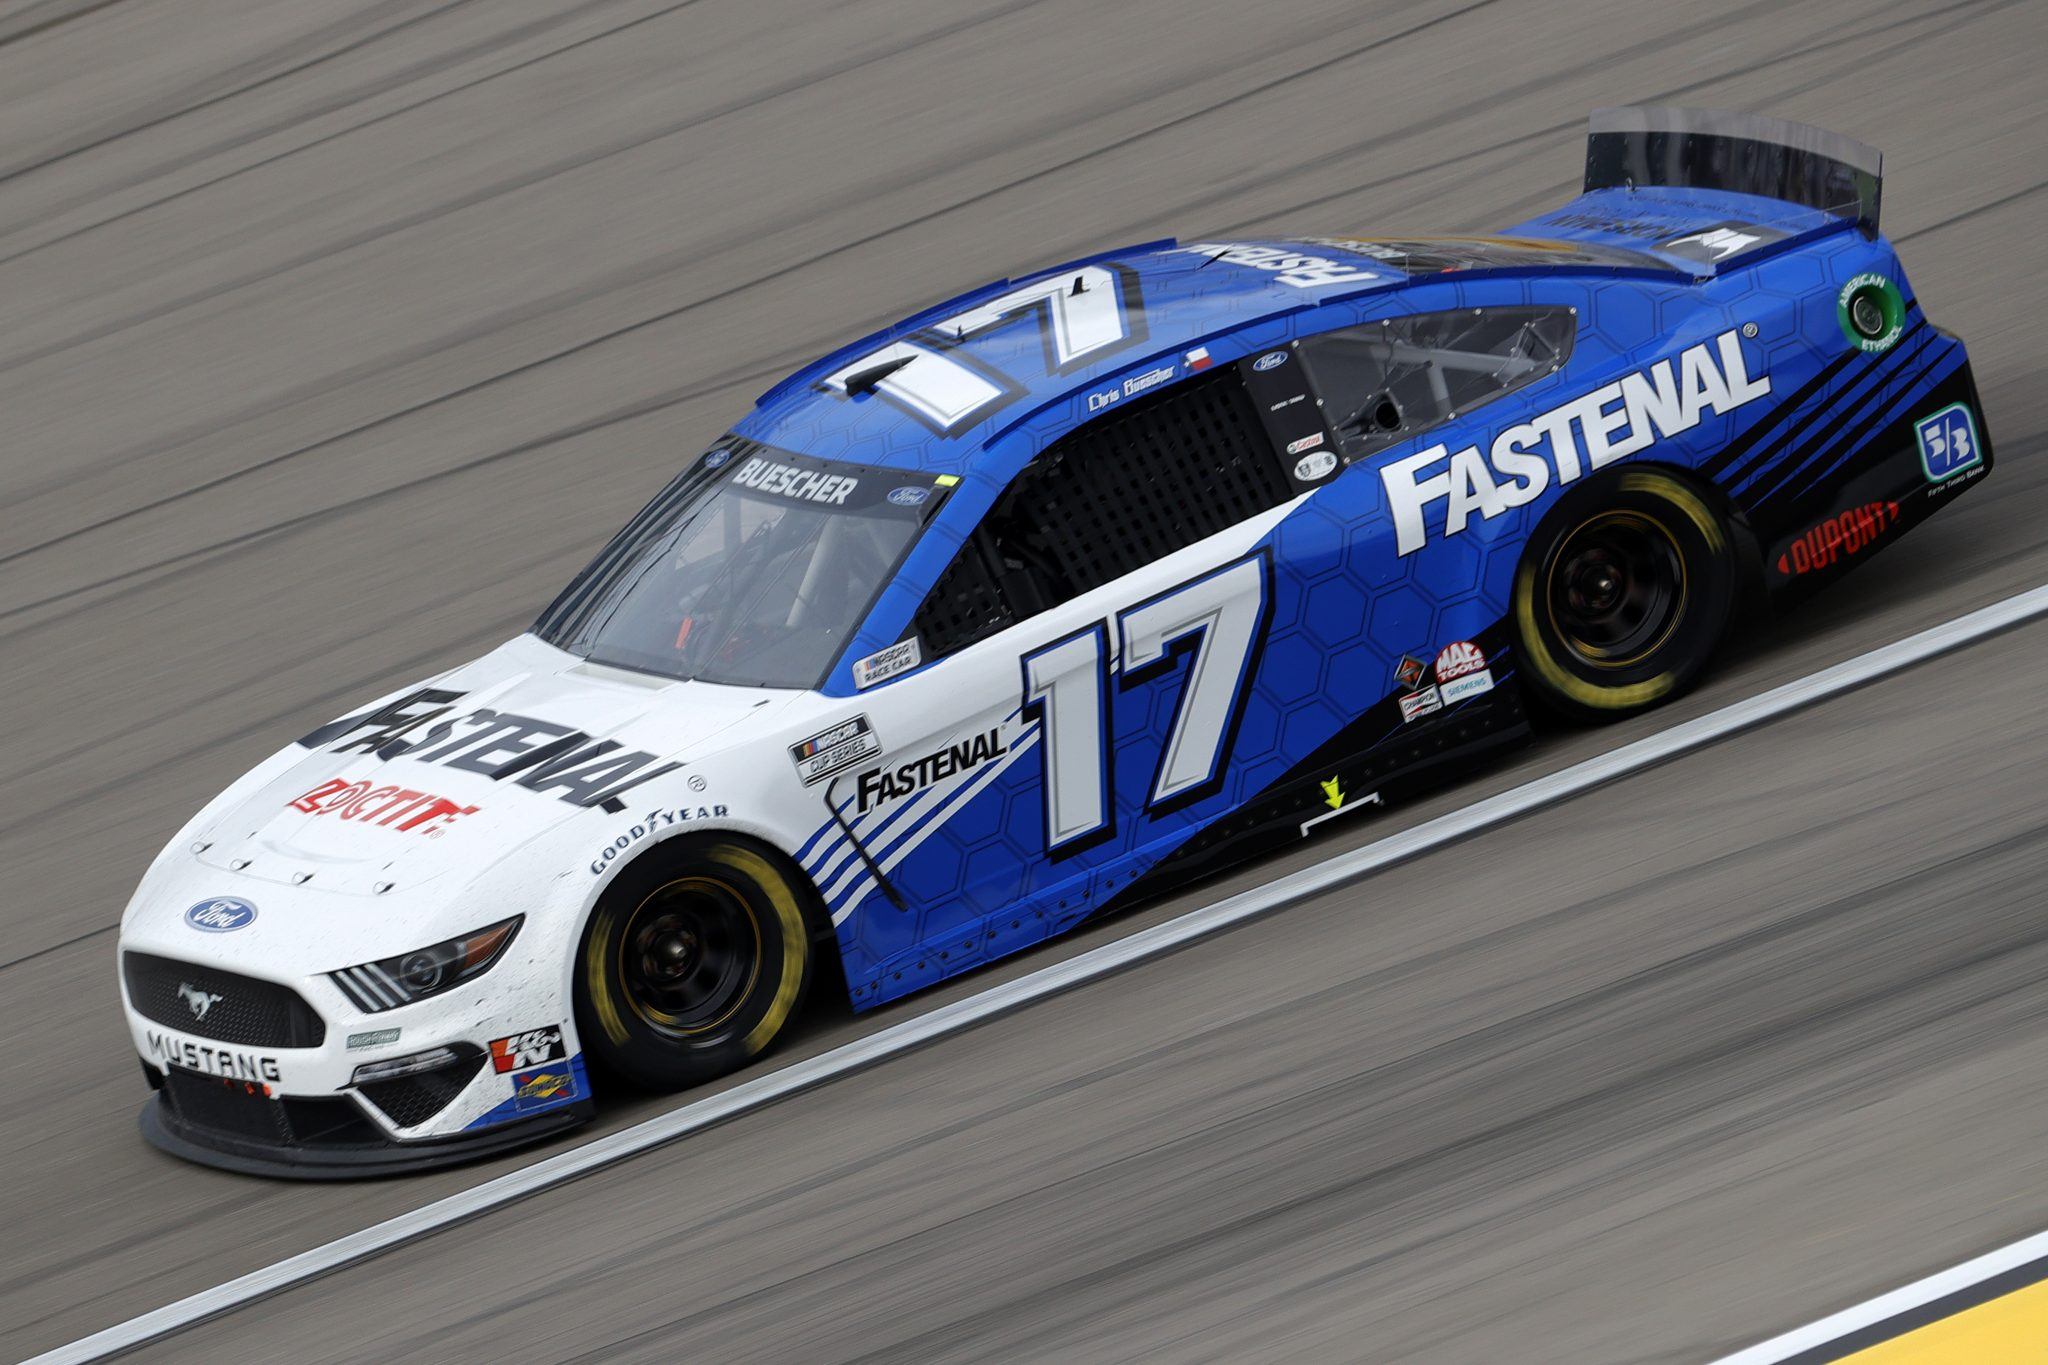 LAS VEGAS, NEVADA - MARCH 07: Chris Buescher, driver of the #17 Fastenal Ford, drives during the NASCAR Cup Series Pennzoil 400 presented by Jiffy Lube at the Las Vegas Motor Speedway on March 07, 2021 in Las Vegas, Nevada. (Photo by Chris Graythen/Getty Images) | Getty Images